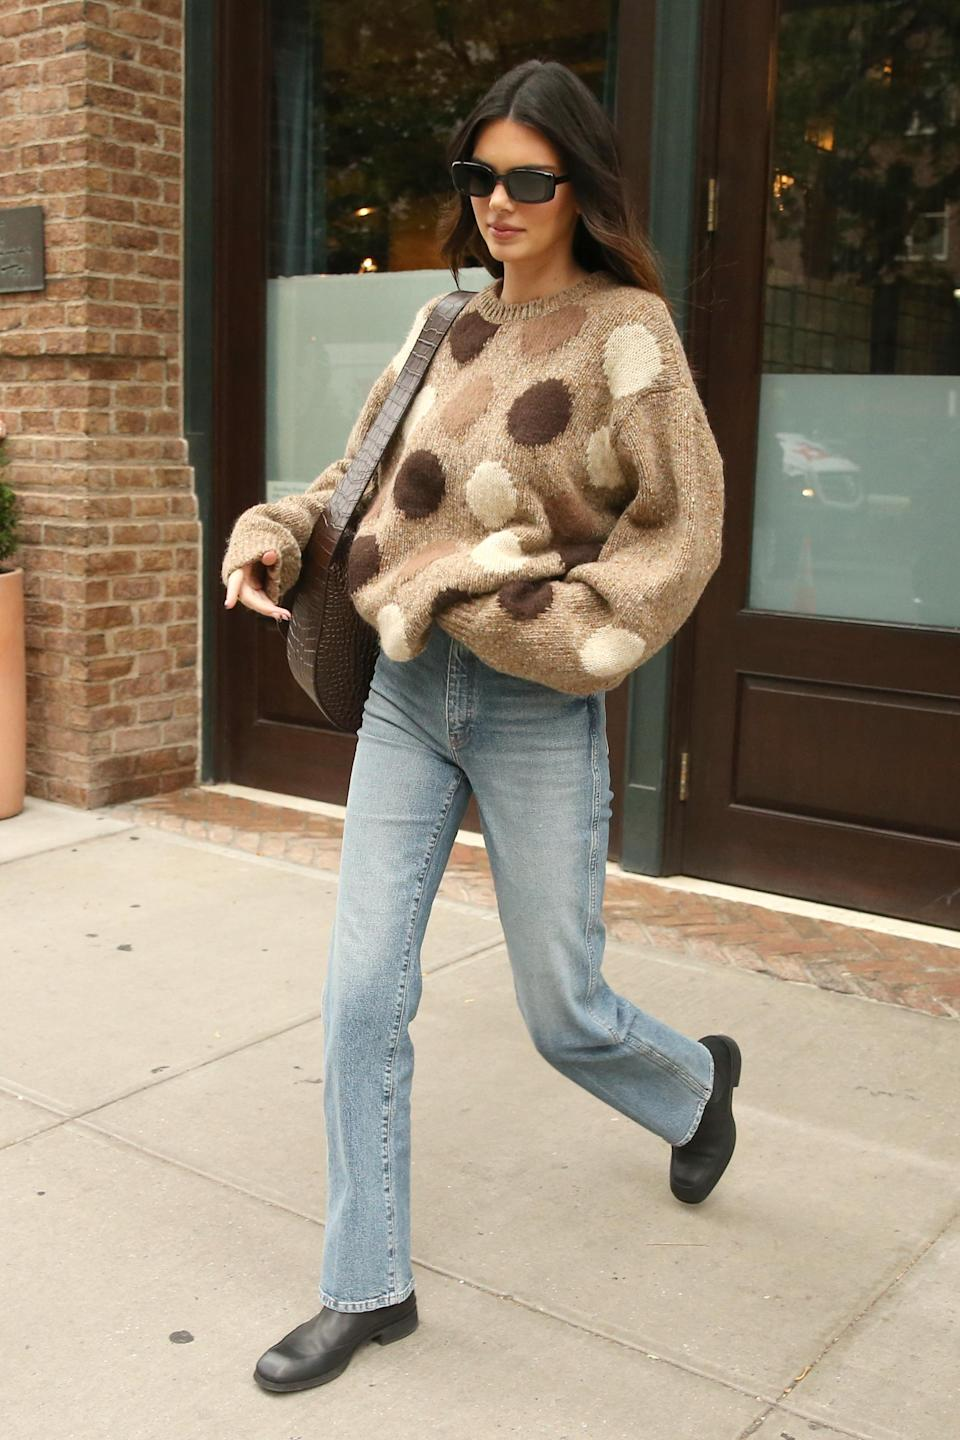 Kendall Jenner wears a sweater from Acne Studios with jeans and Chelsea boots. - Credit: Christopher Peterson / SplashNews.com